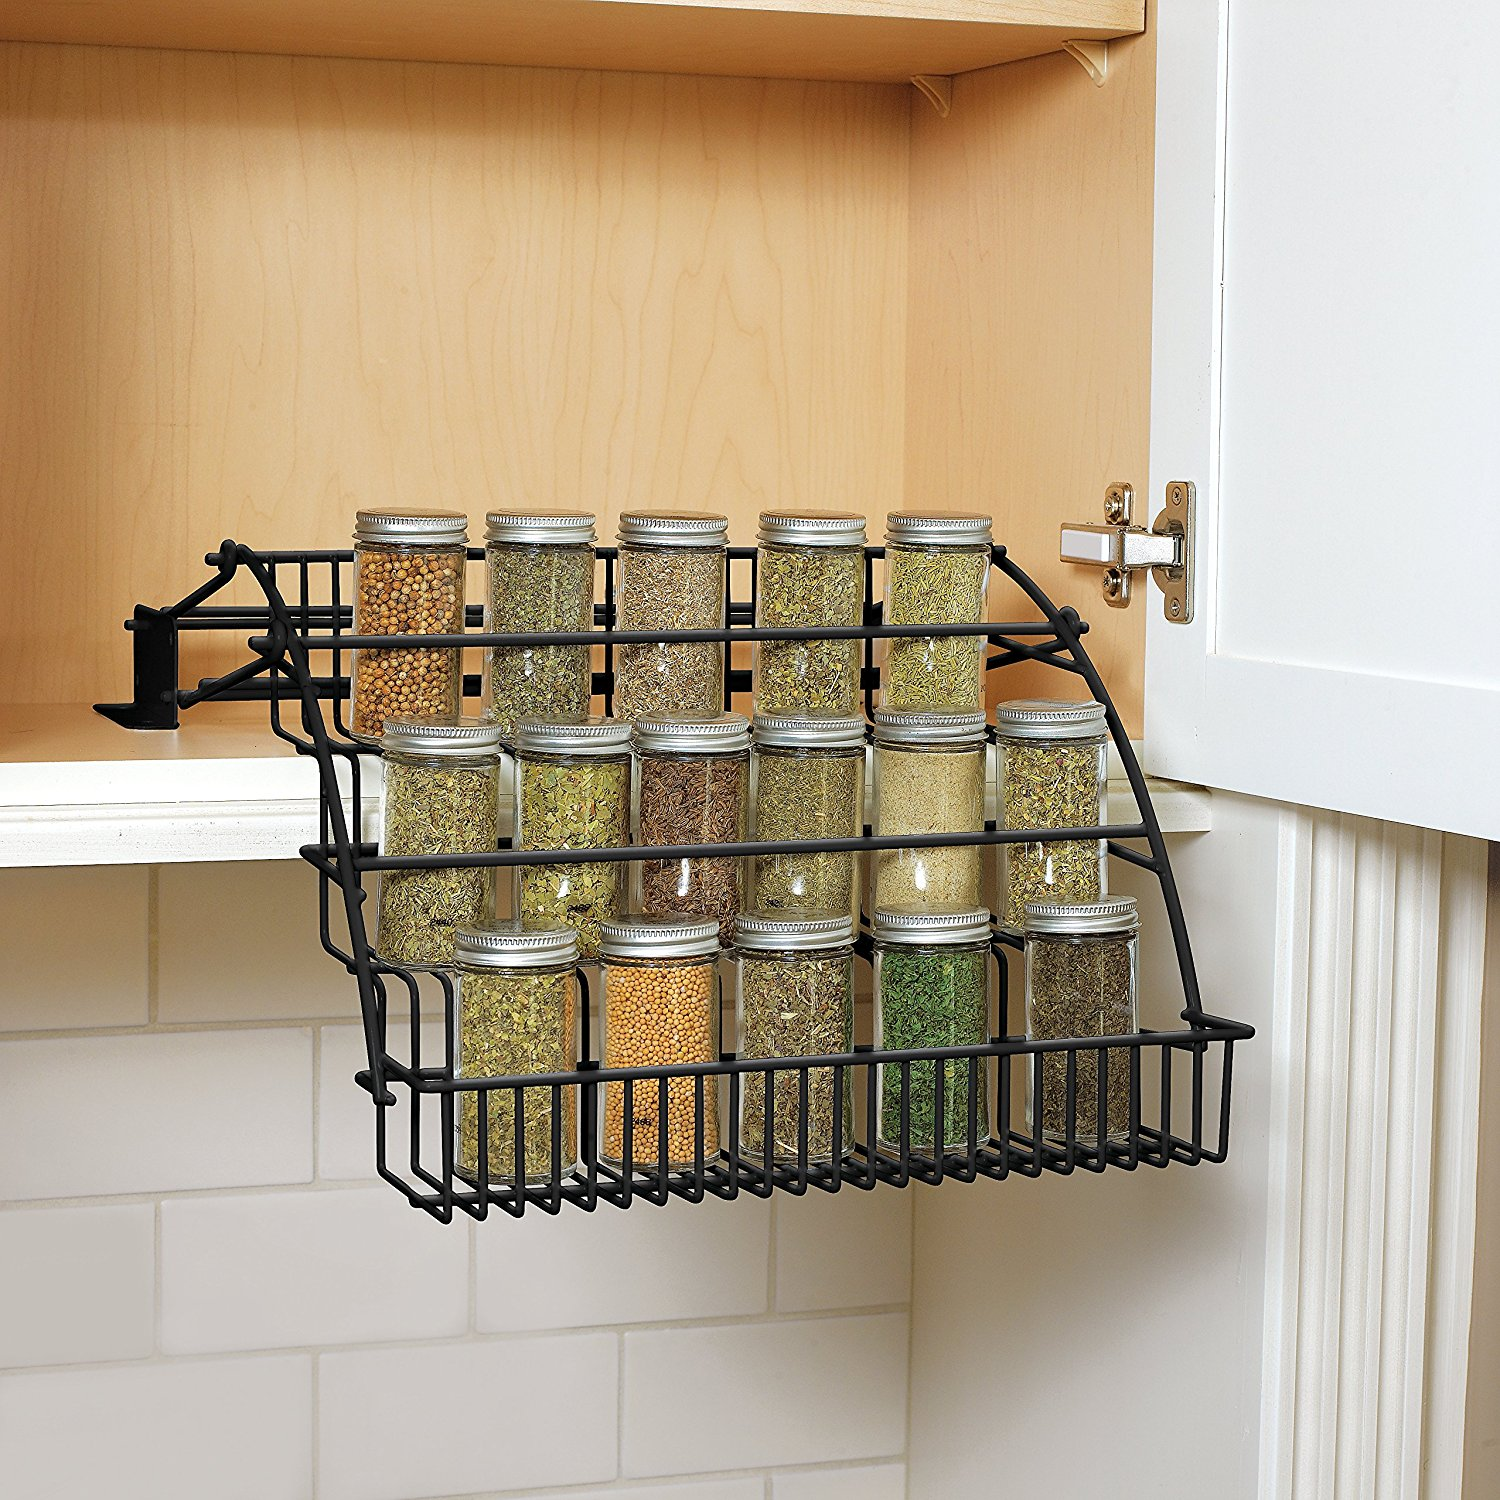 Pull down spice rack fg802009 pull down design that gives you visibility to see all your spices by rubbermaidusa walmart com